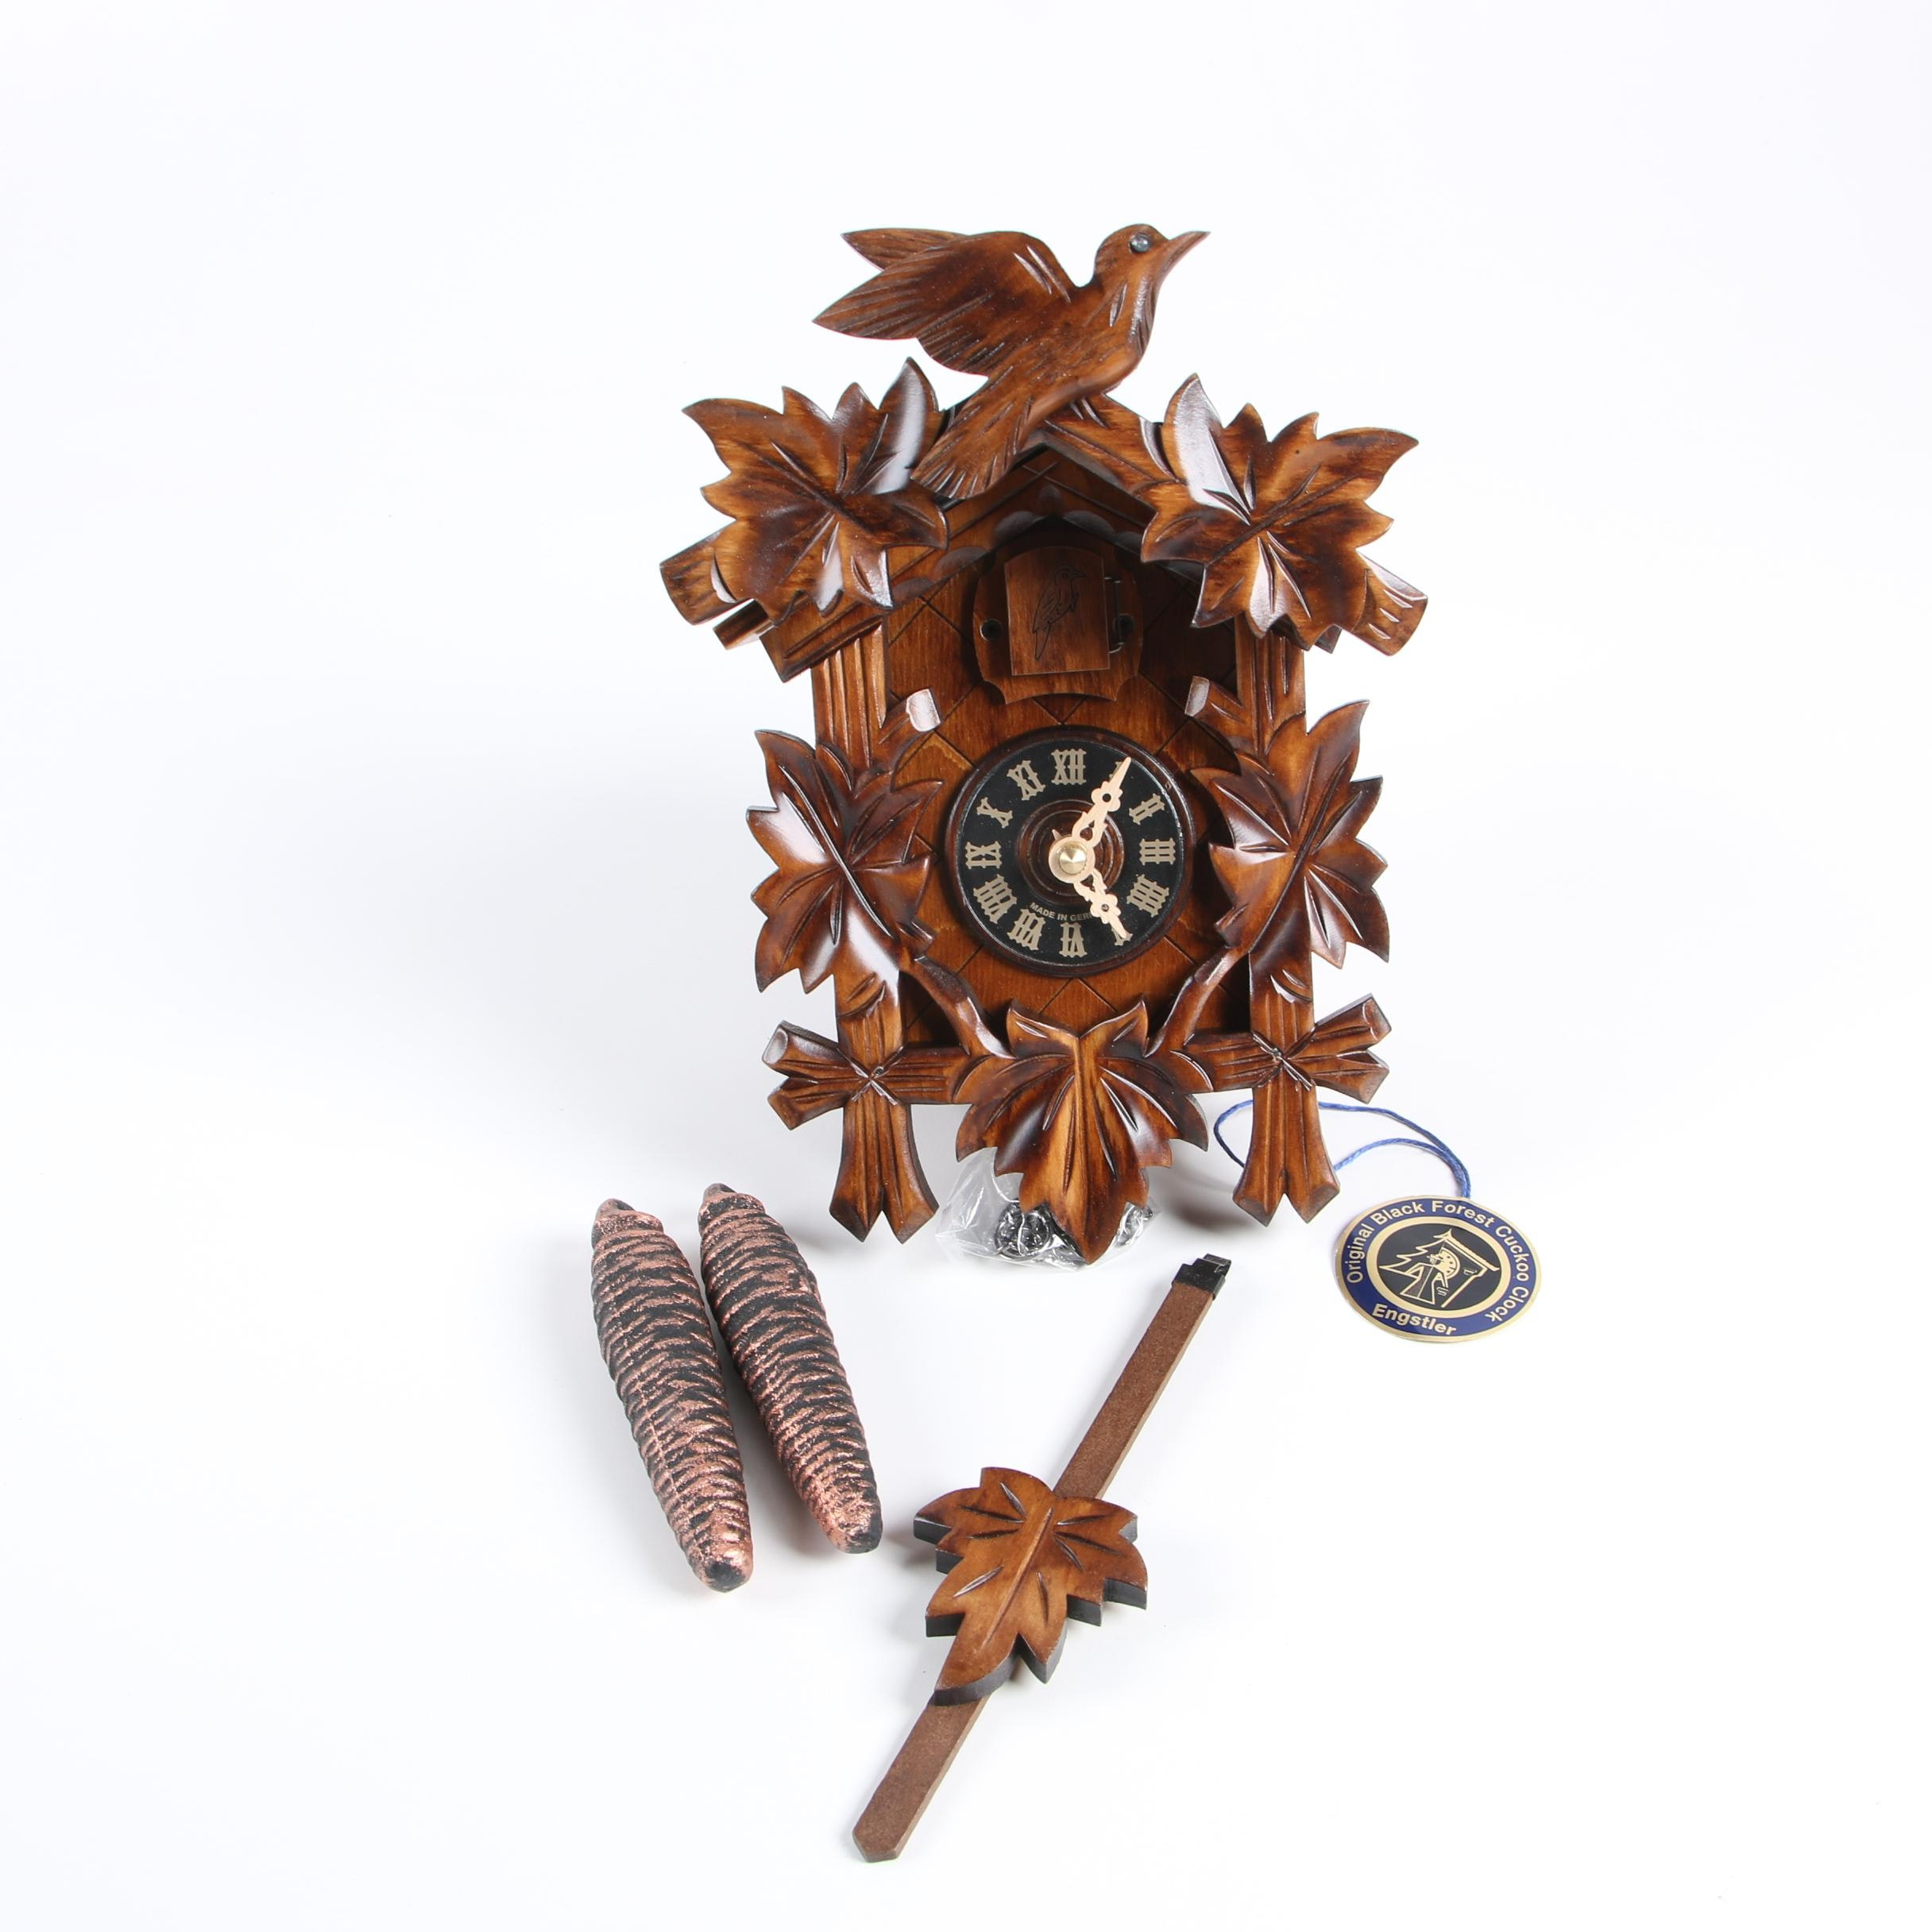 Engstler Kuckuckuhren Black Forest Cuckoo Clock with Walnut Finish